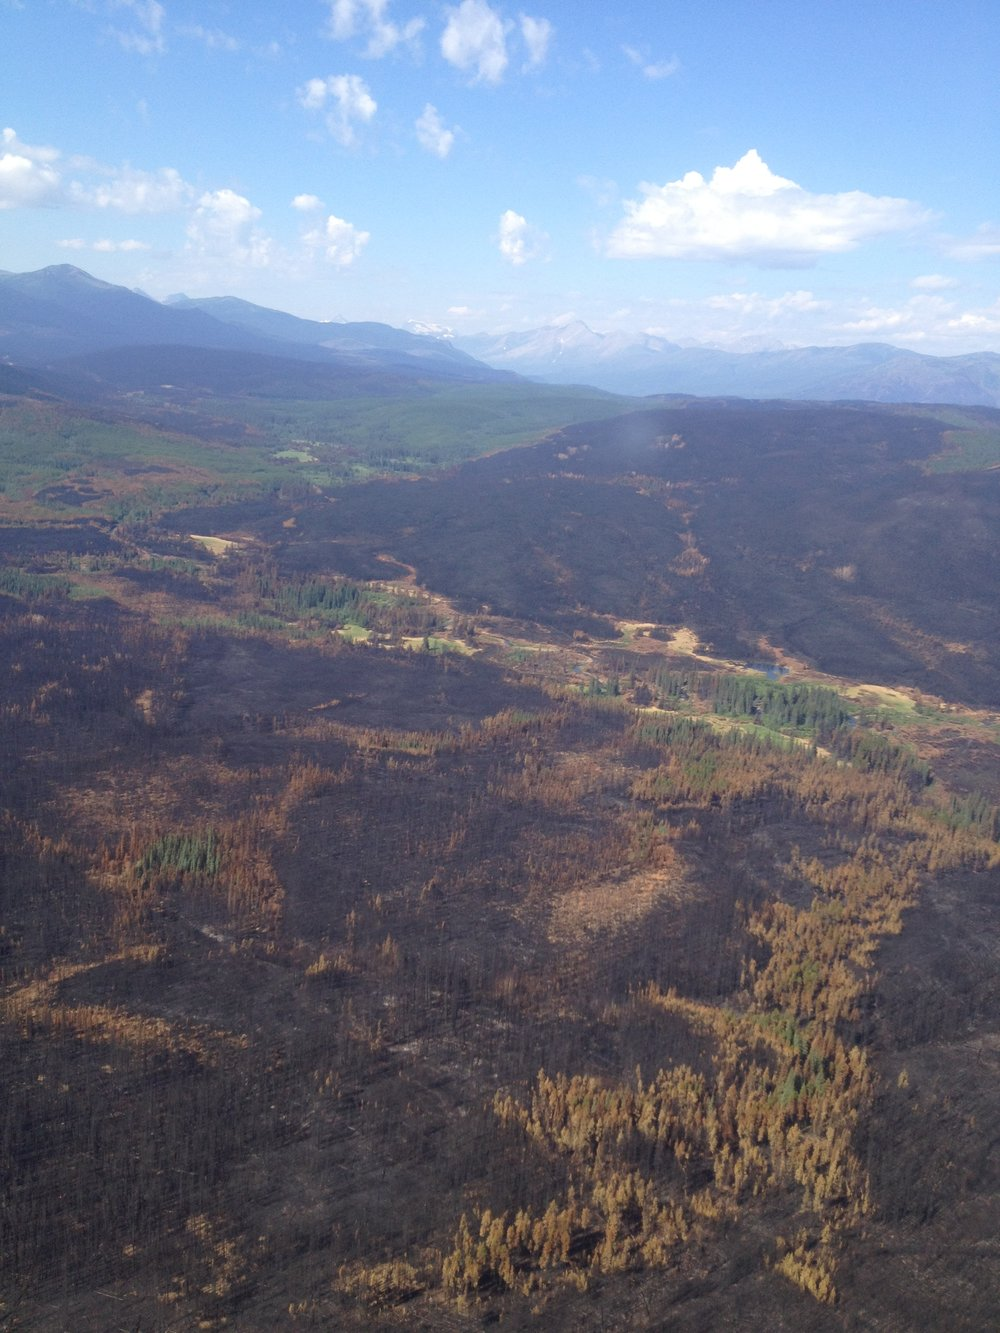 An Aerial view of the burn pattern of wildfire near Tumbler Ridge,BC.